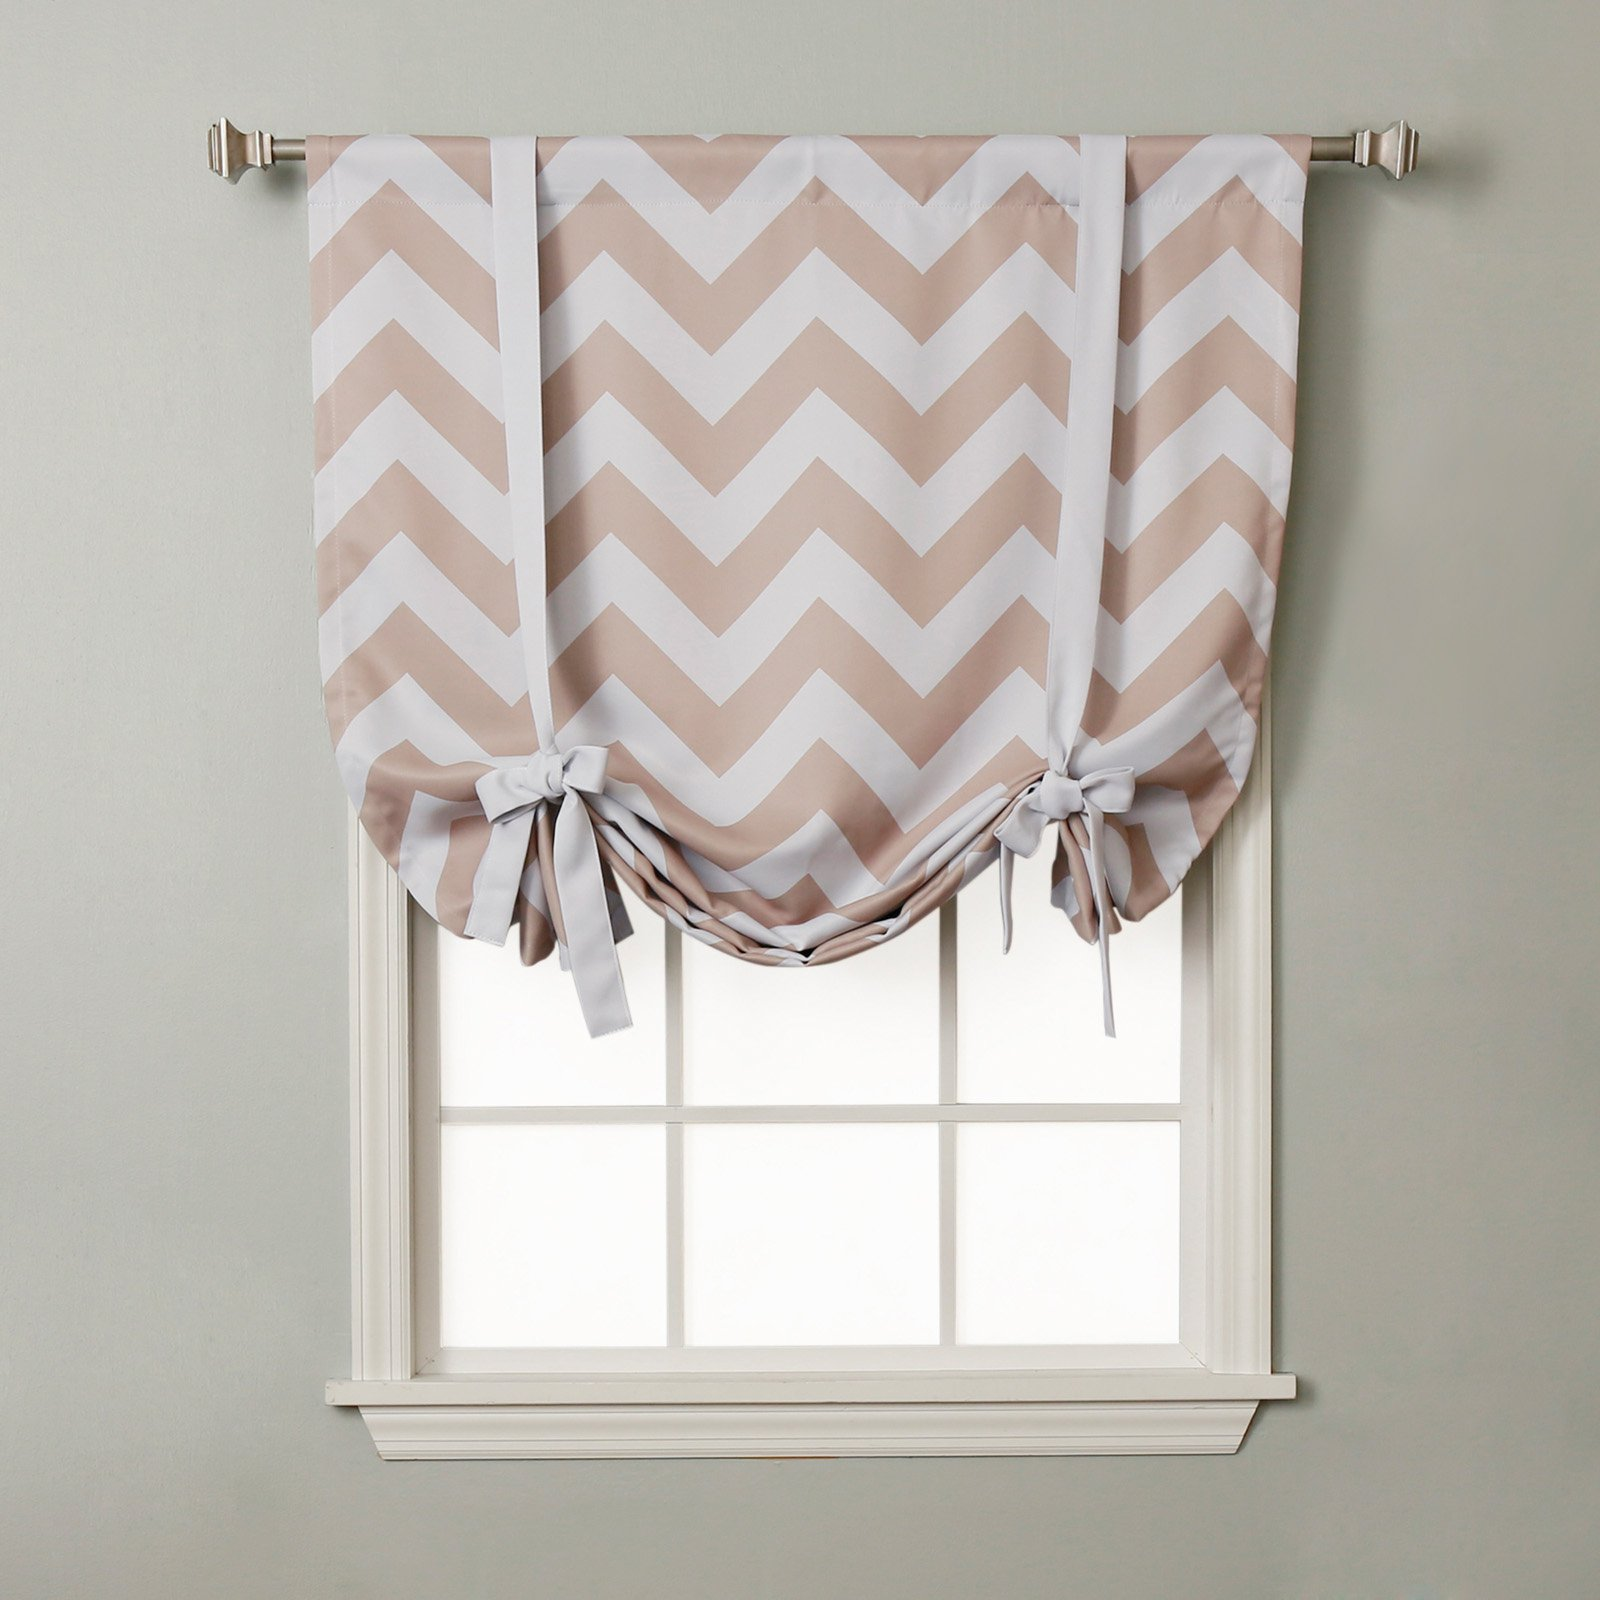 Best Home Fashion, Inc. Chevron Print Tie-Up Shade